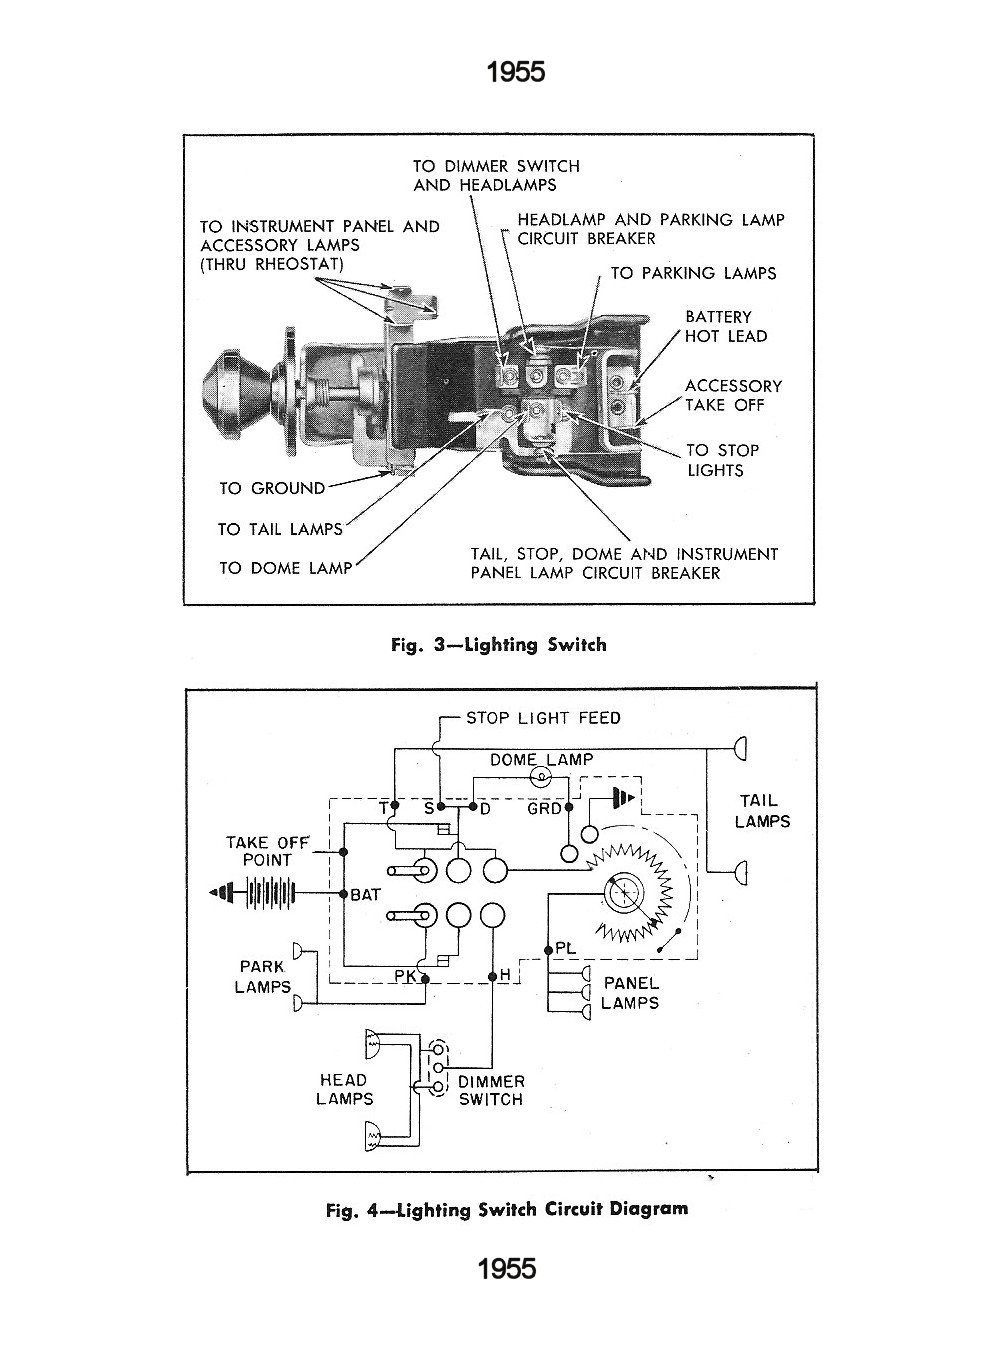 chevy wiring diagrams Of Light Switch Wiring Diagram For 1963 Chevy 1955 lighting switch & circuit